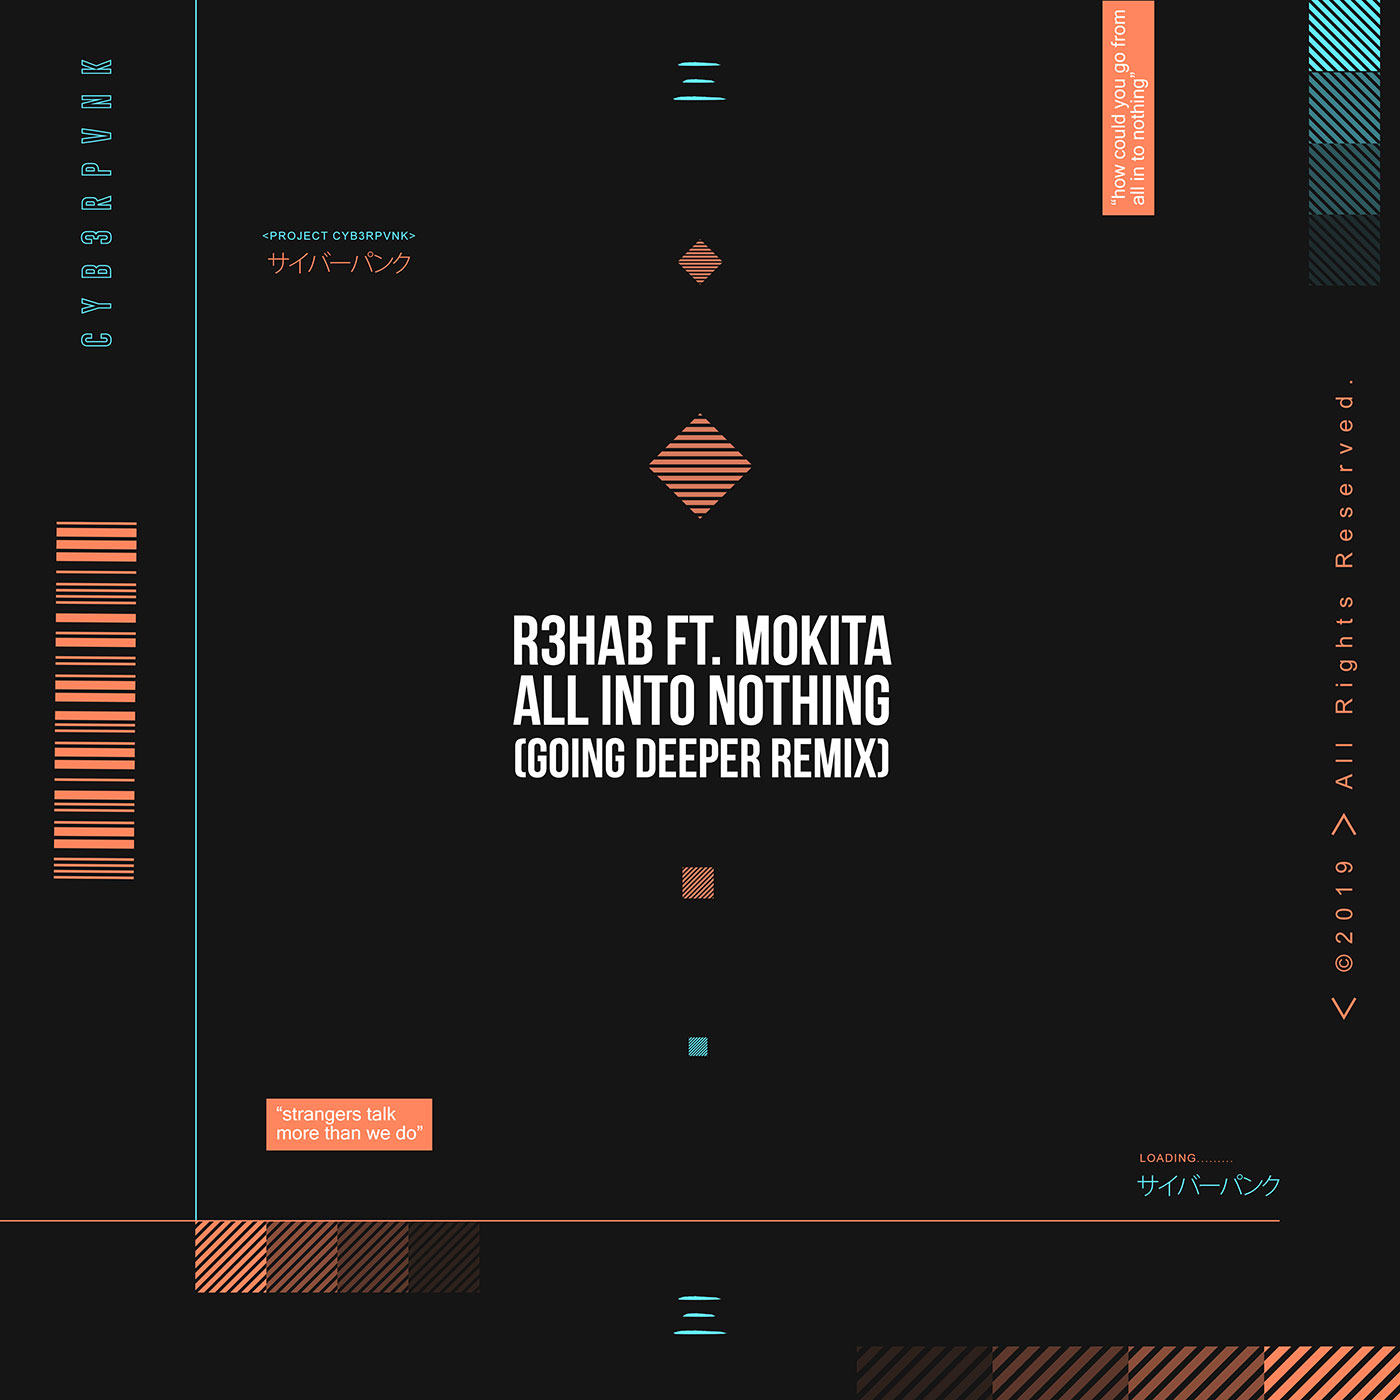 All Into Nothing (Going Deeper Remix) — CYB3RPVNK